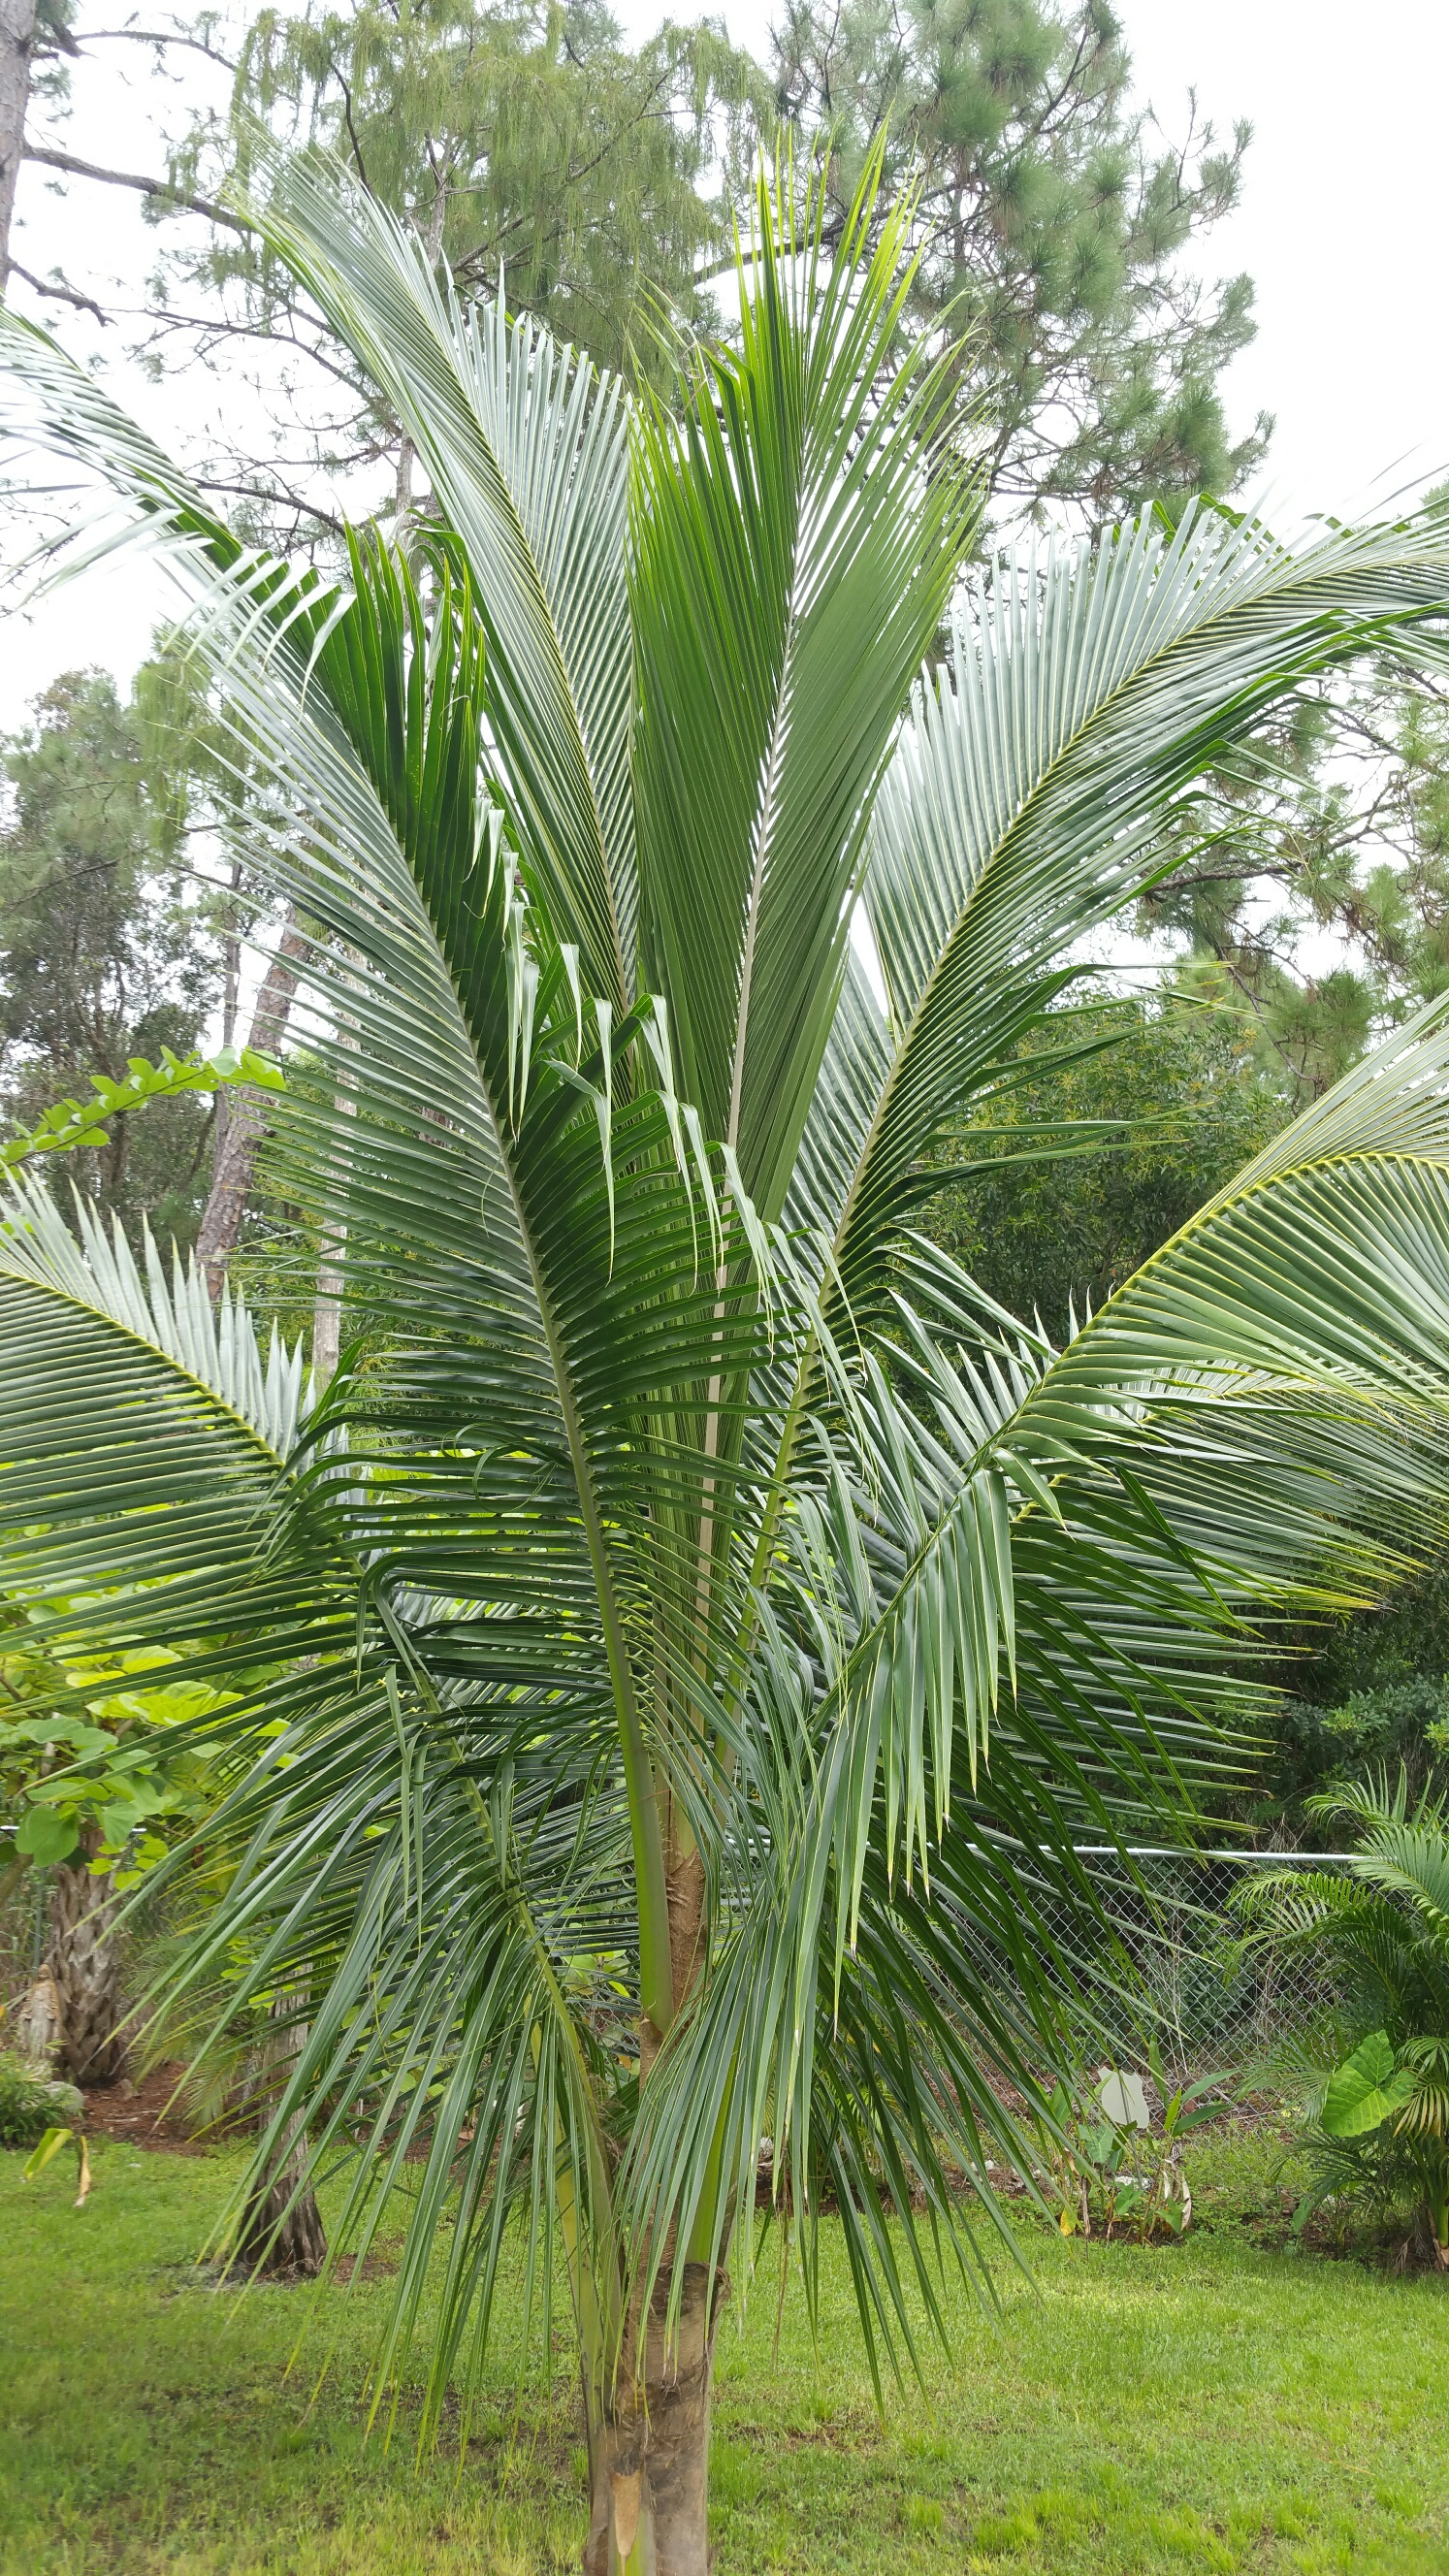 Palm near by looks perfect